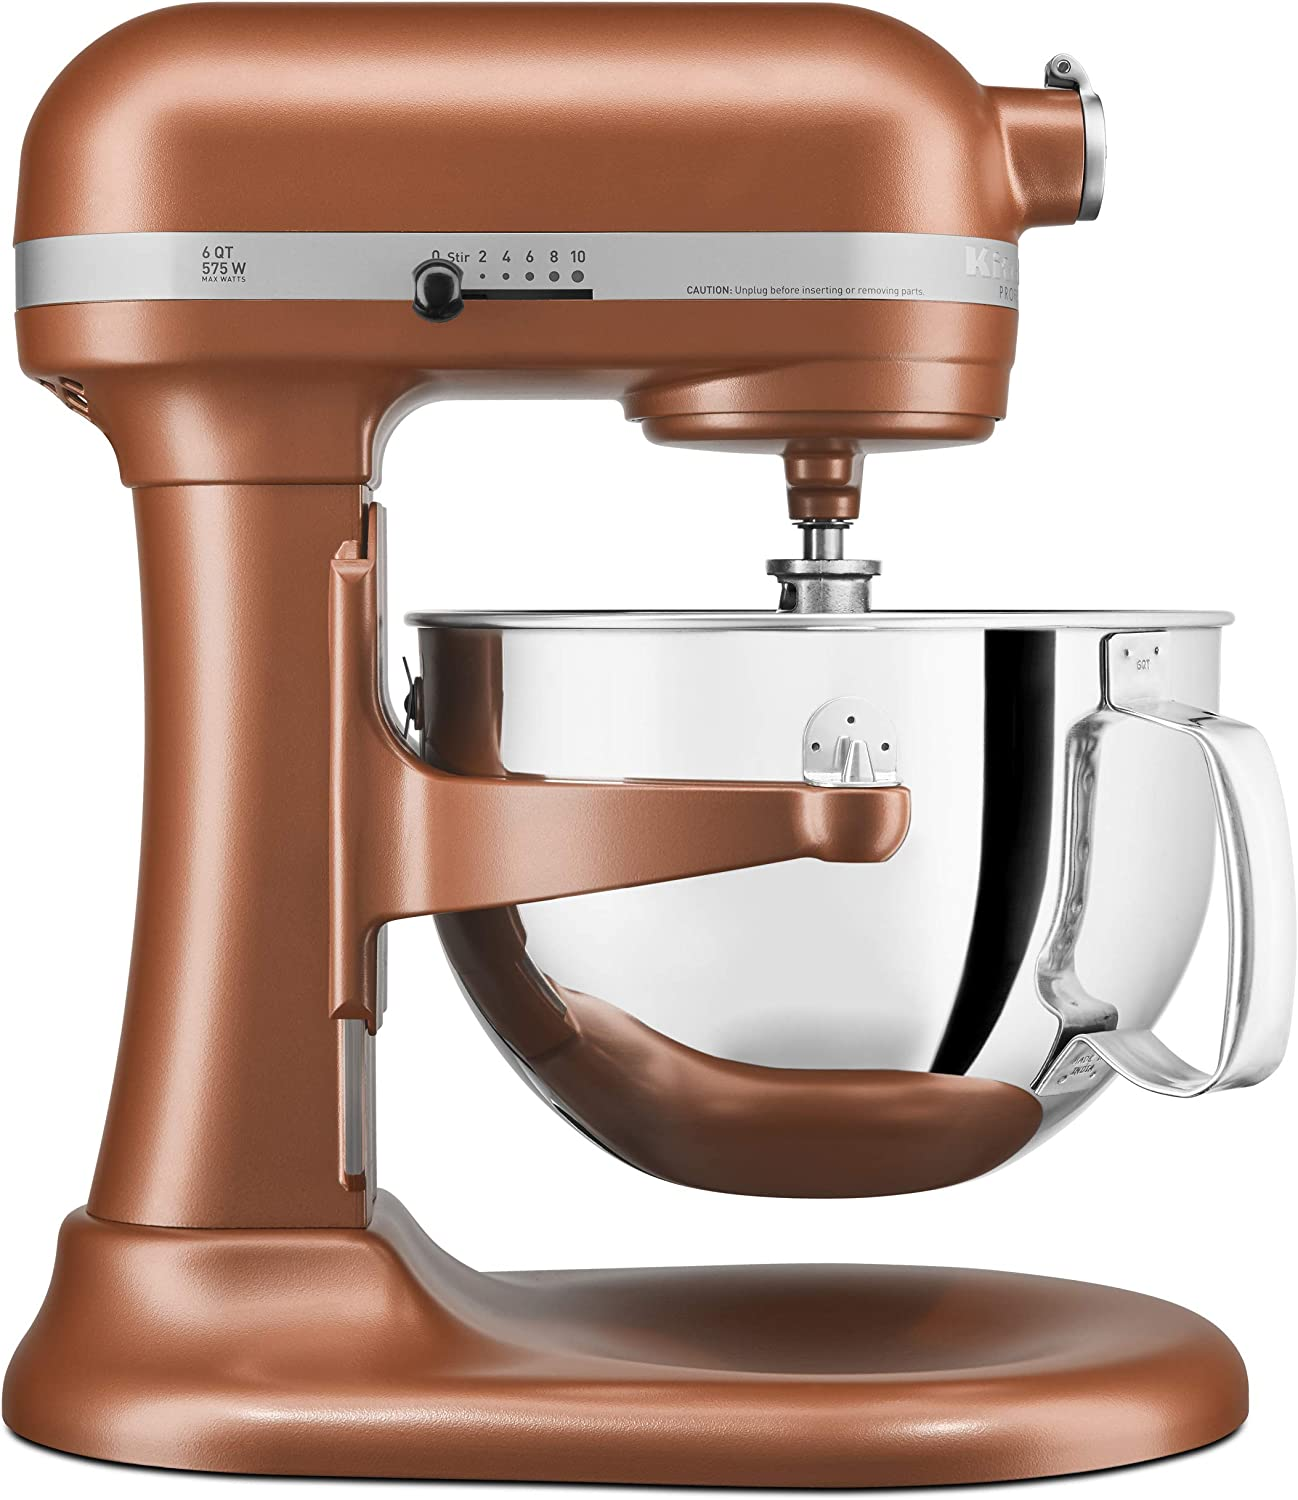 Amazon Com Kitchenaid Kp26m1xce 6 Qt Professional 600 Series Bowl Lift Stand Mixer Copper Pearl Electric Stand Mixers Kitchen Dining